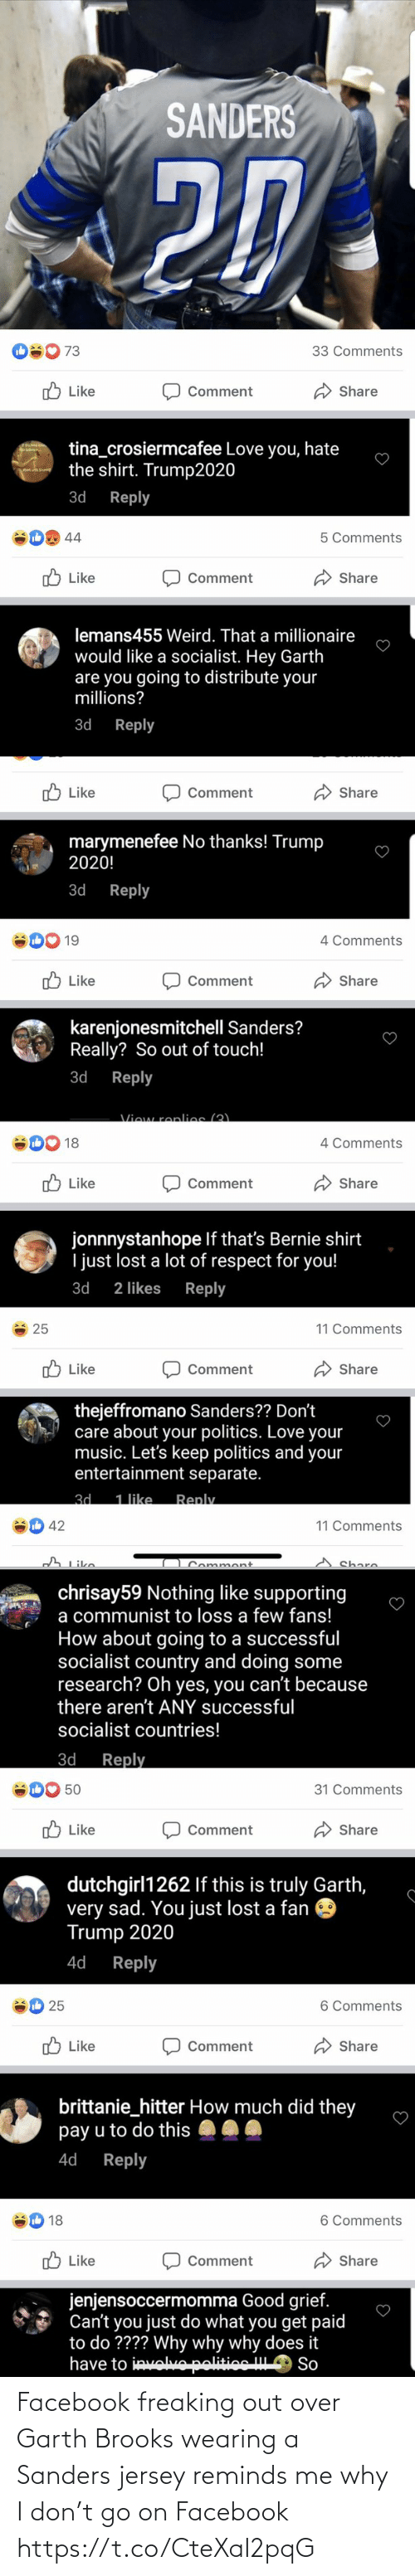 Garth: Facebook freaking out over Garth Brooks wearing a Sanders jersey reminds me why I don't go on Facebook https://t.co/CteXaI2pqG